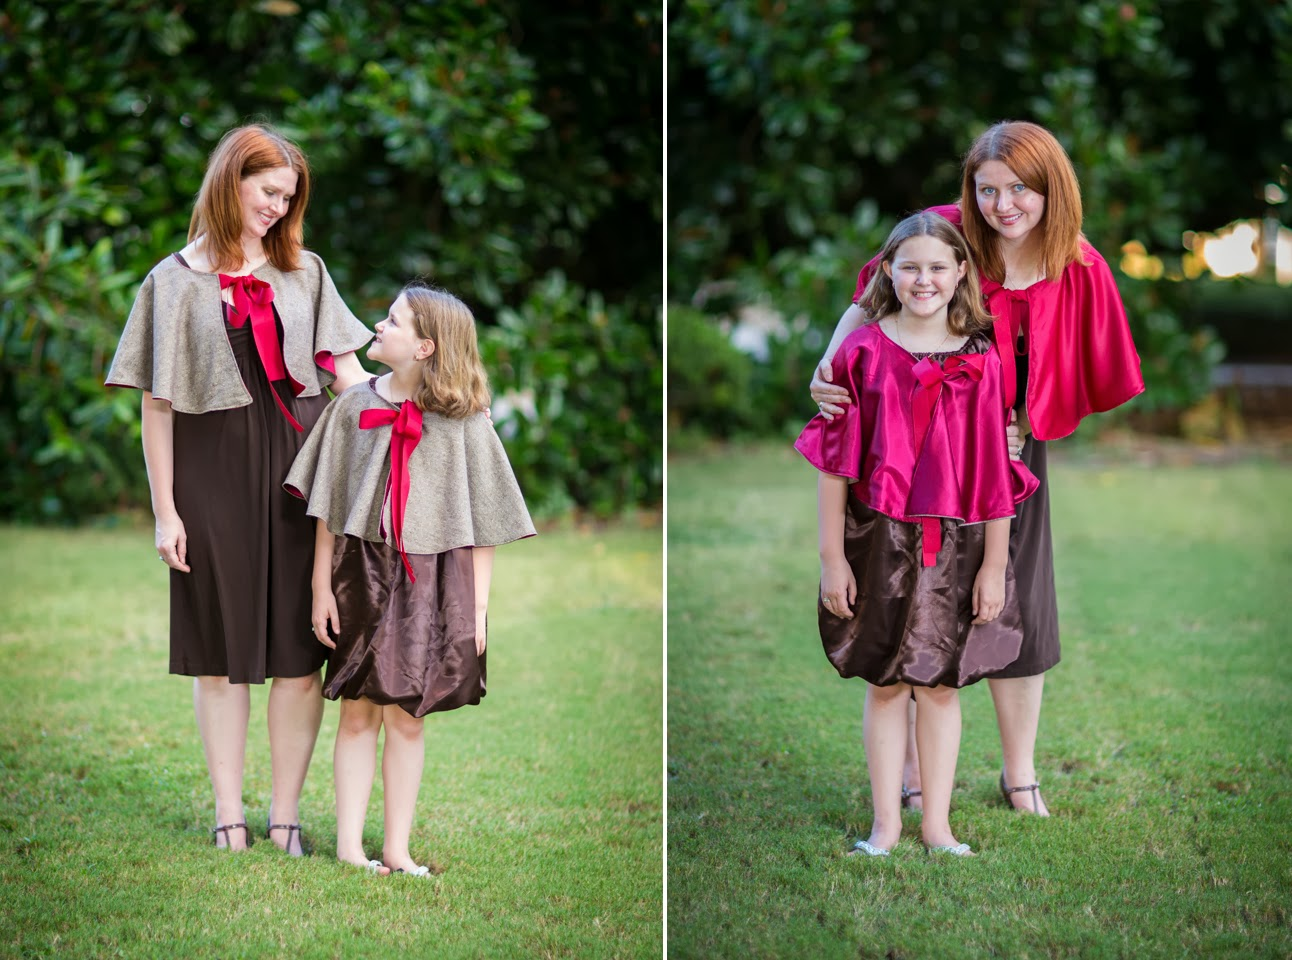 Sew It: Simple Fabric Capelet or Cape